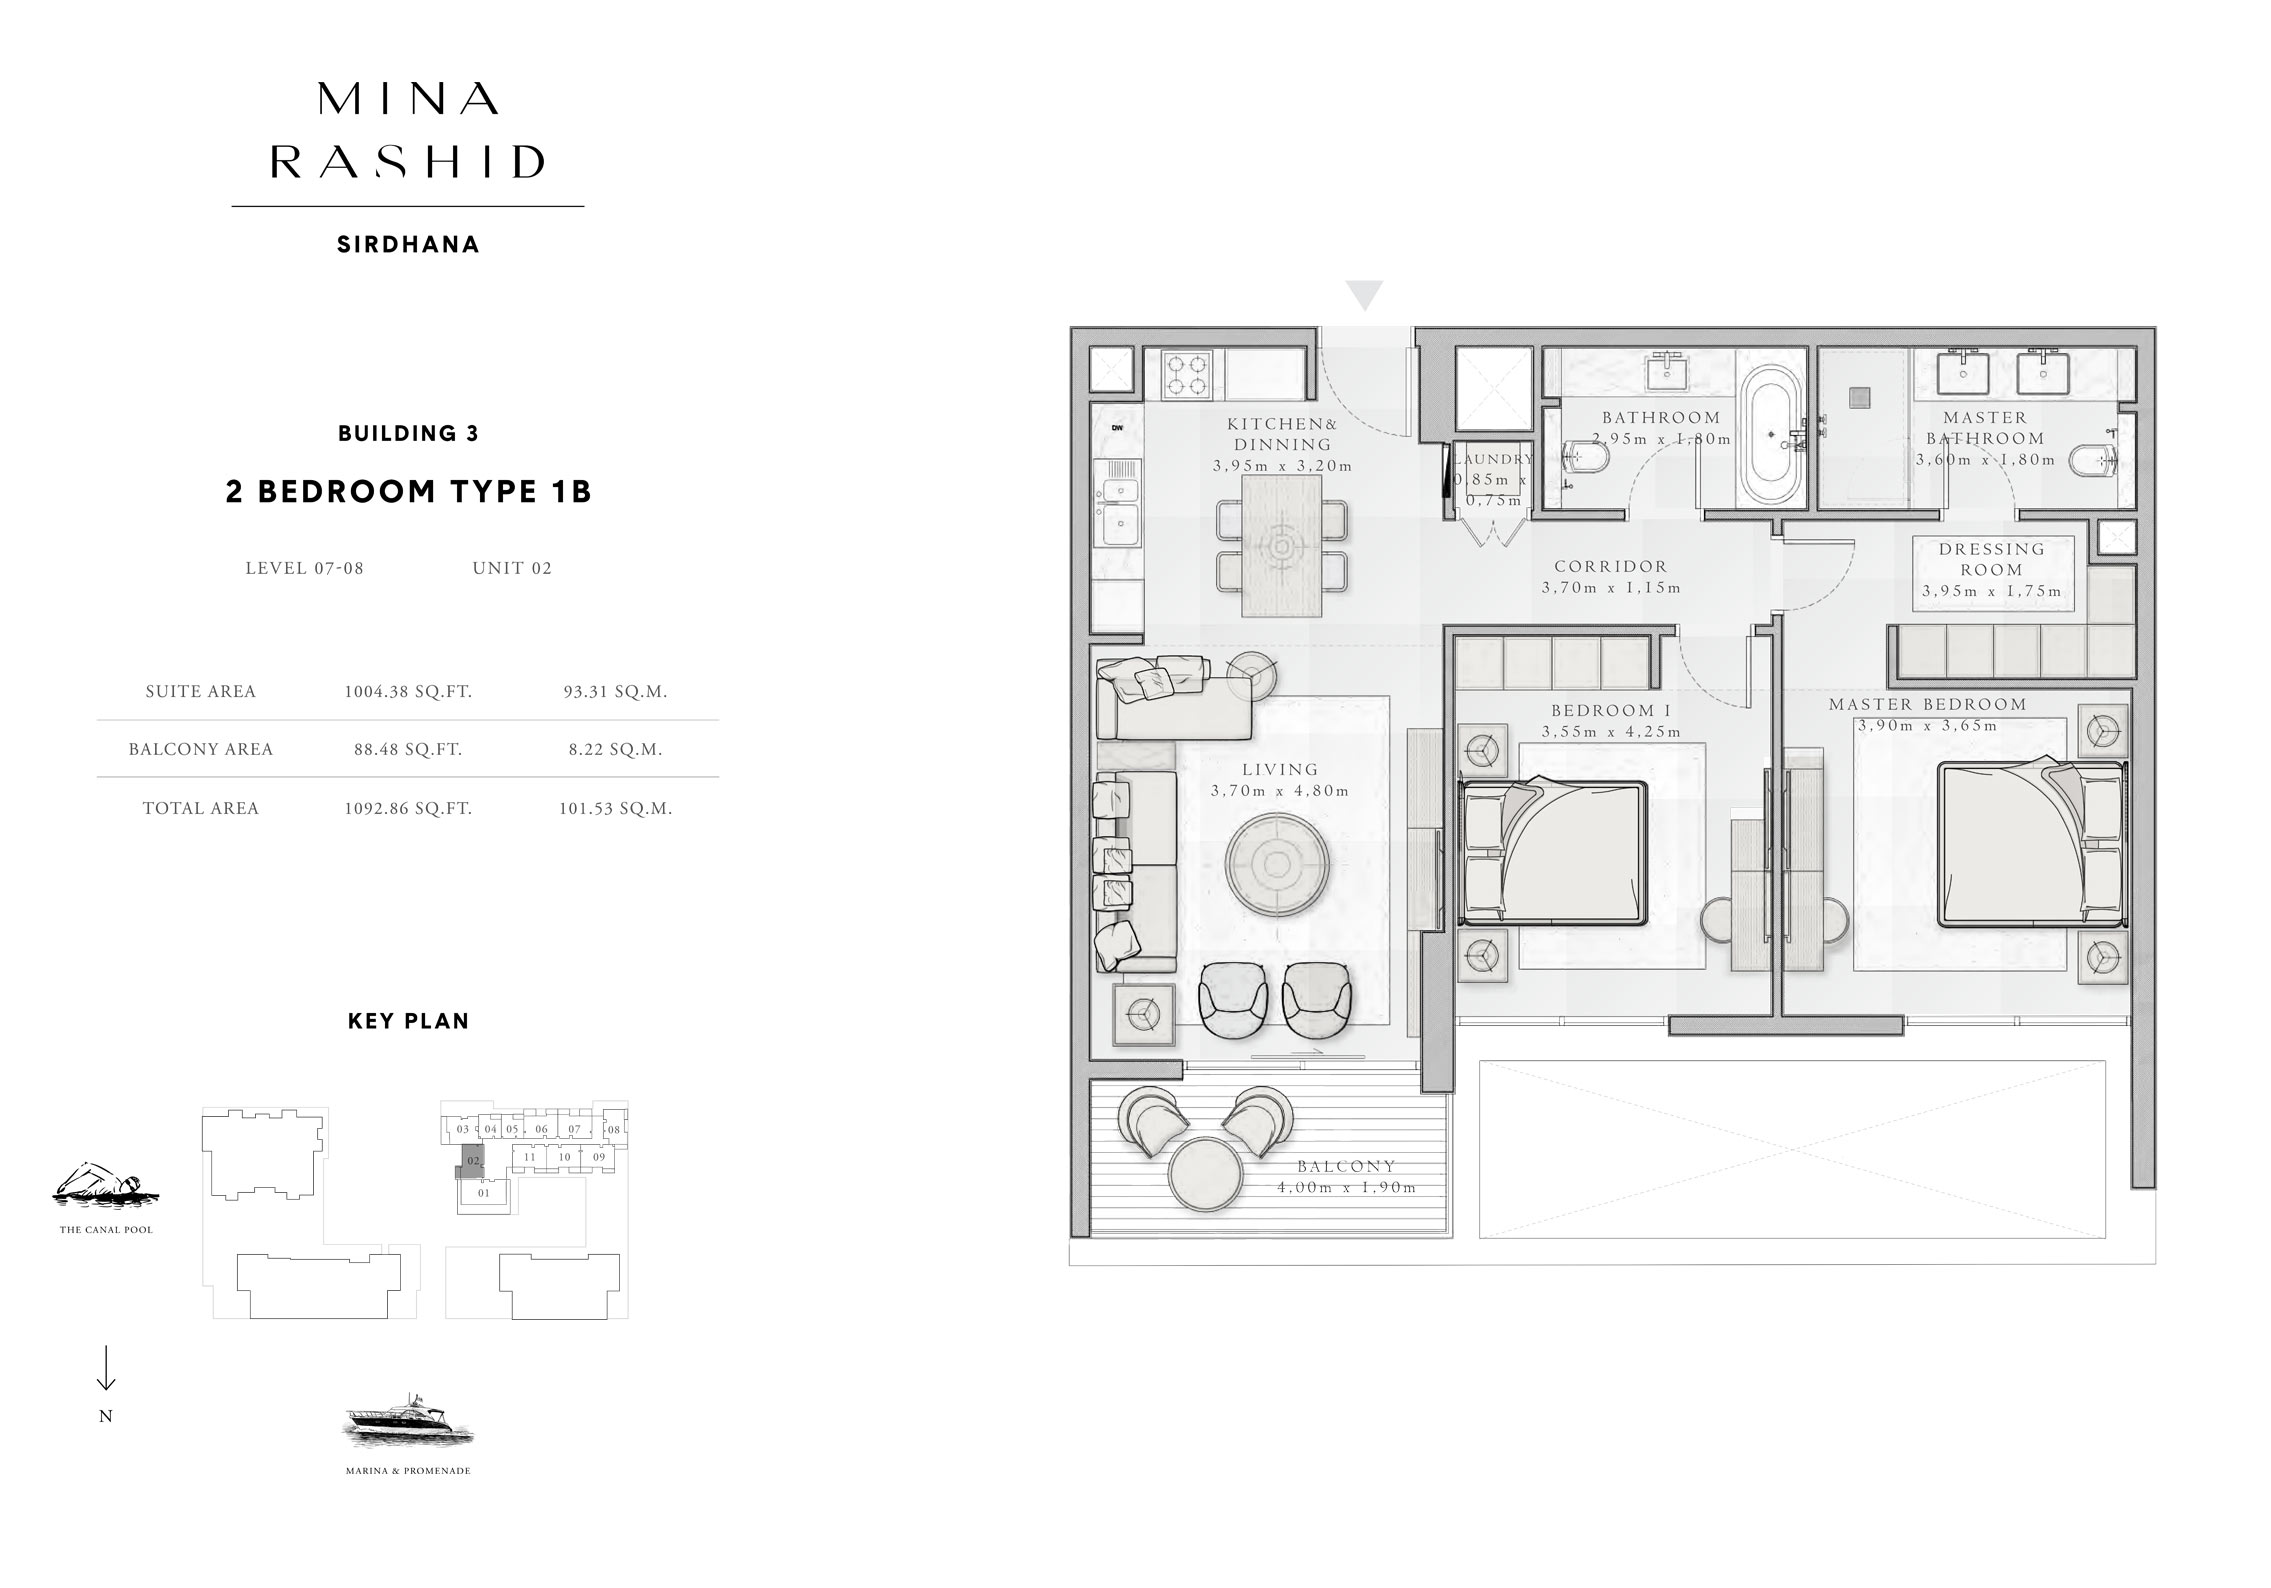 2-Bedroom-Type-1 B, Building-3, Level-7 to 8, Size-1092-Sq-Ft